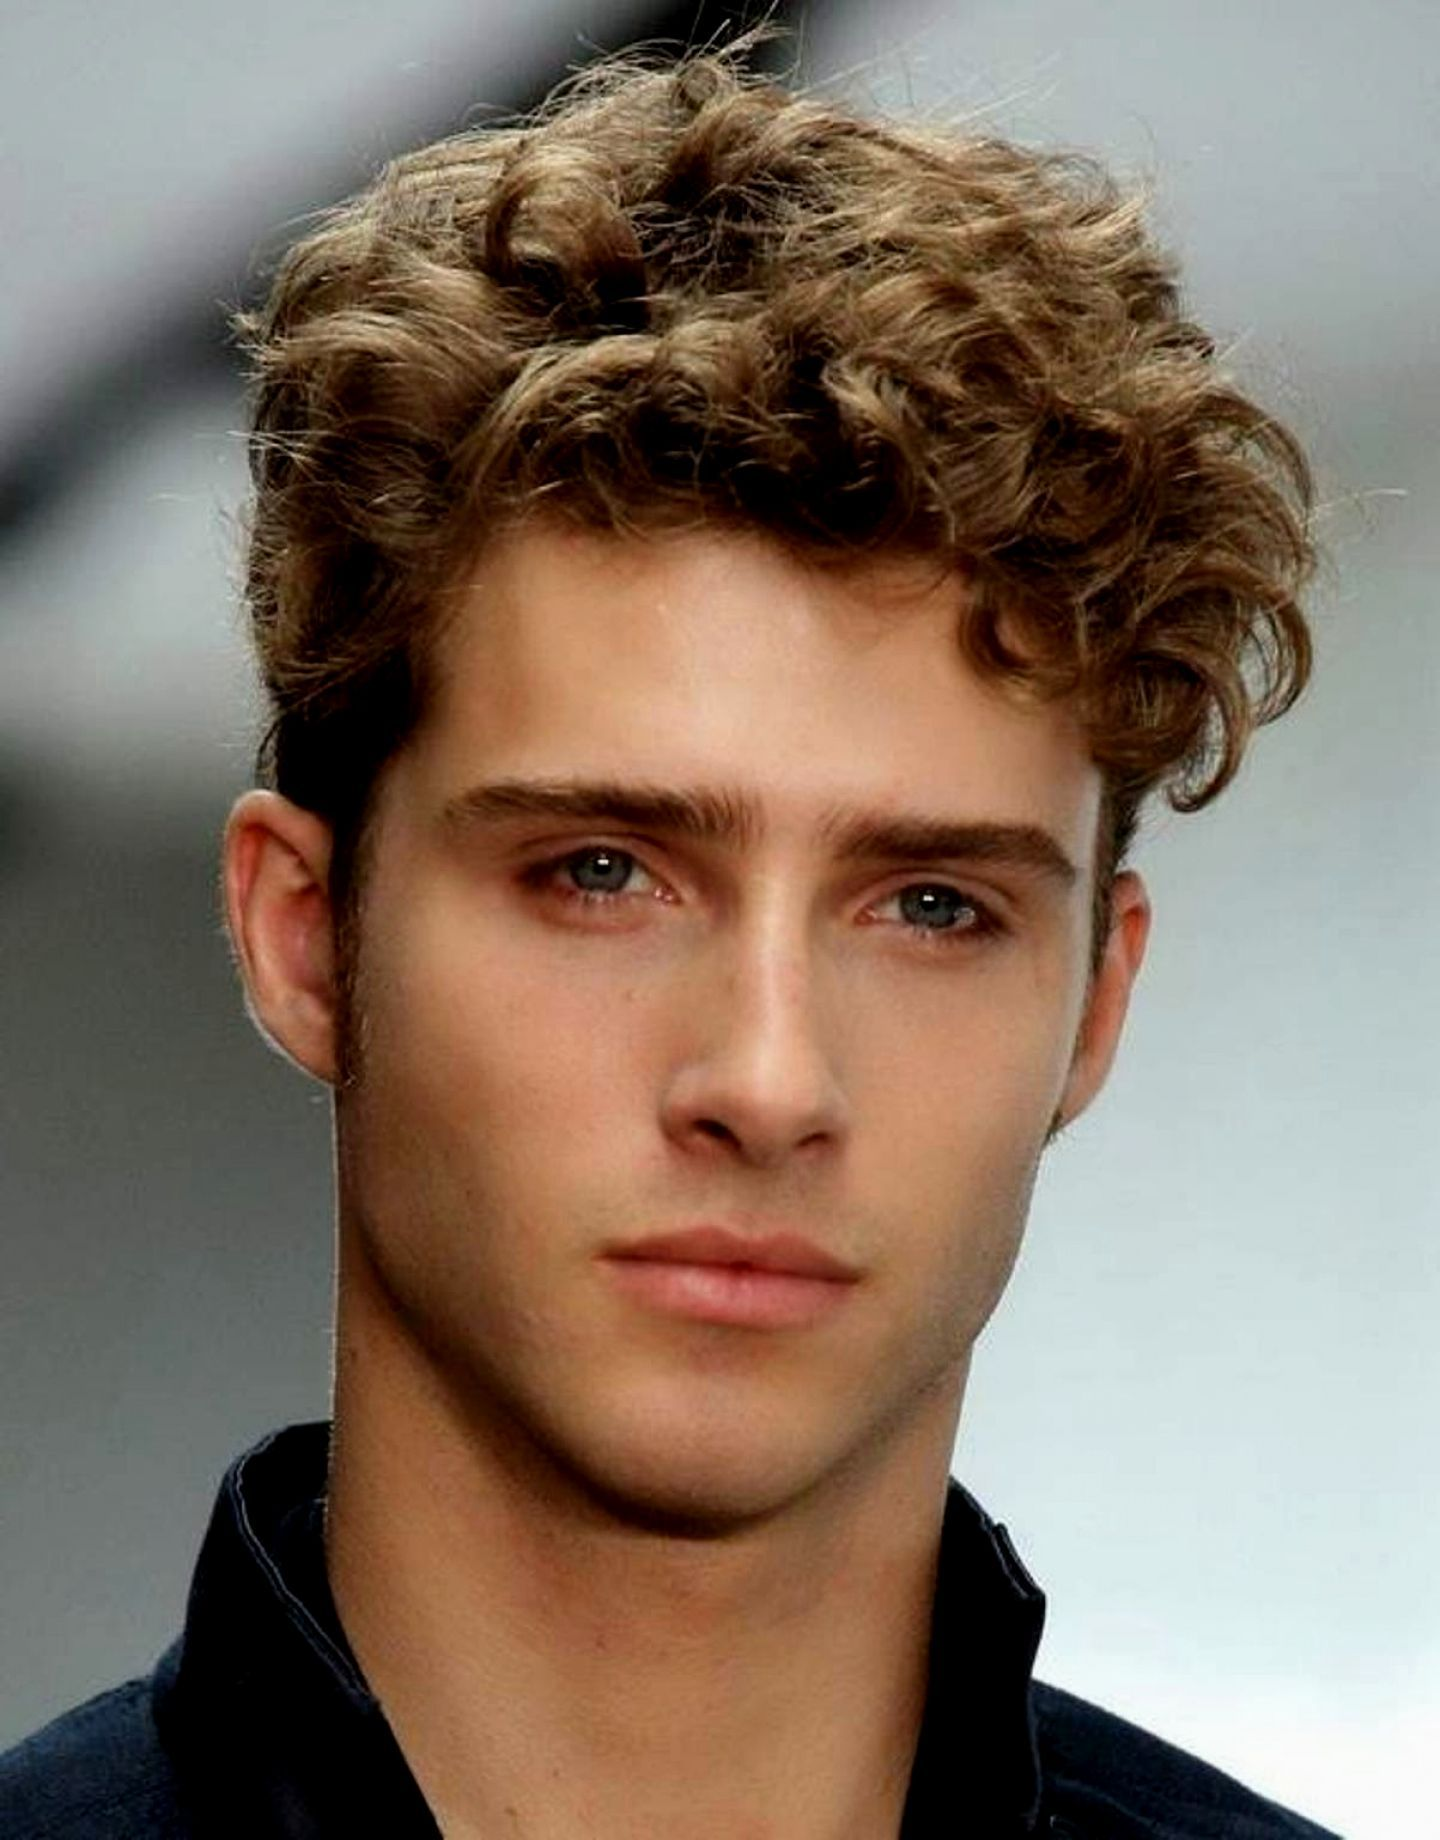 Short Curly Hairstyles Guys | Hairstyles | Pinterest | Curly ...